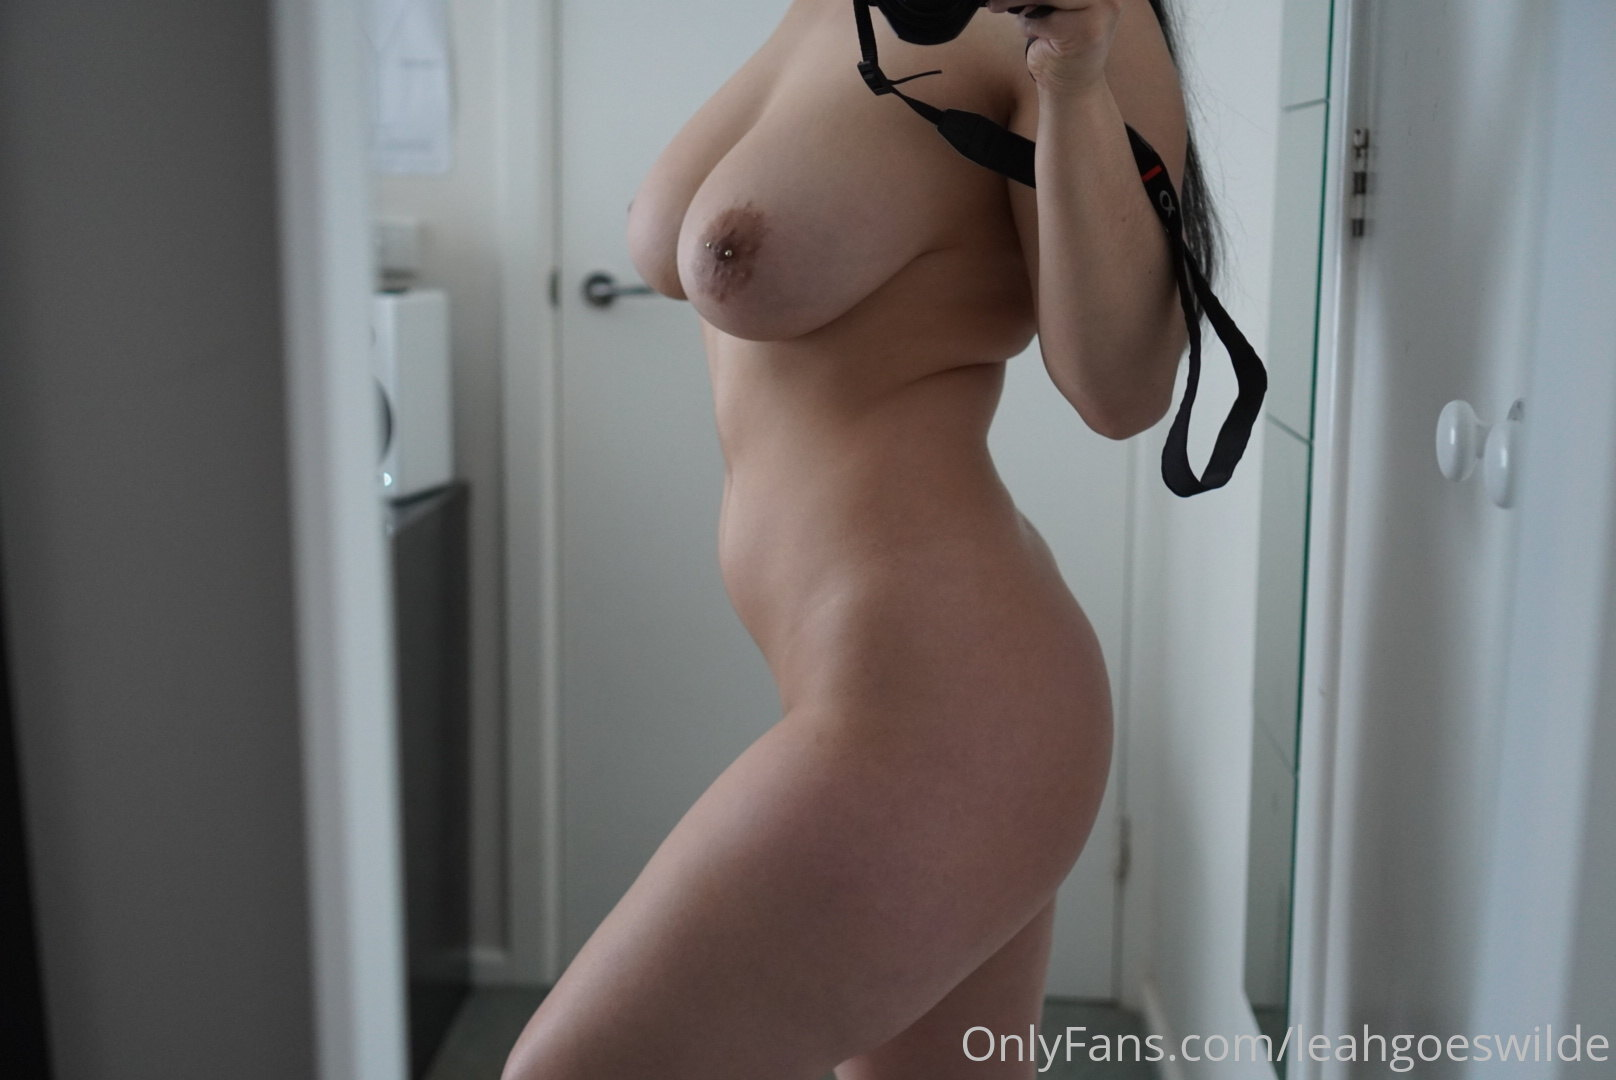 Leahgoeswild Porn OnlyFans Leaked Nudes 79